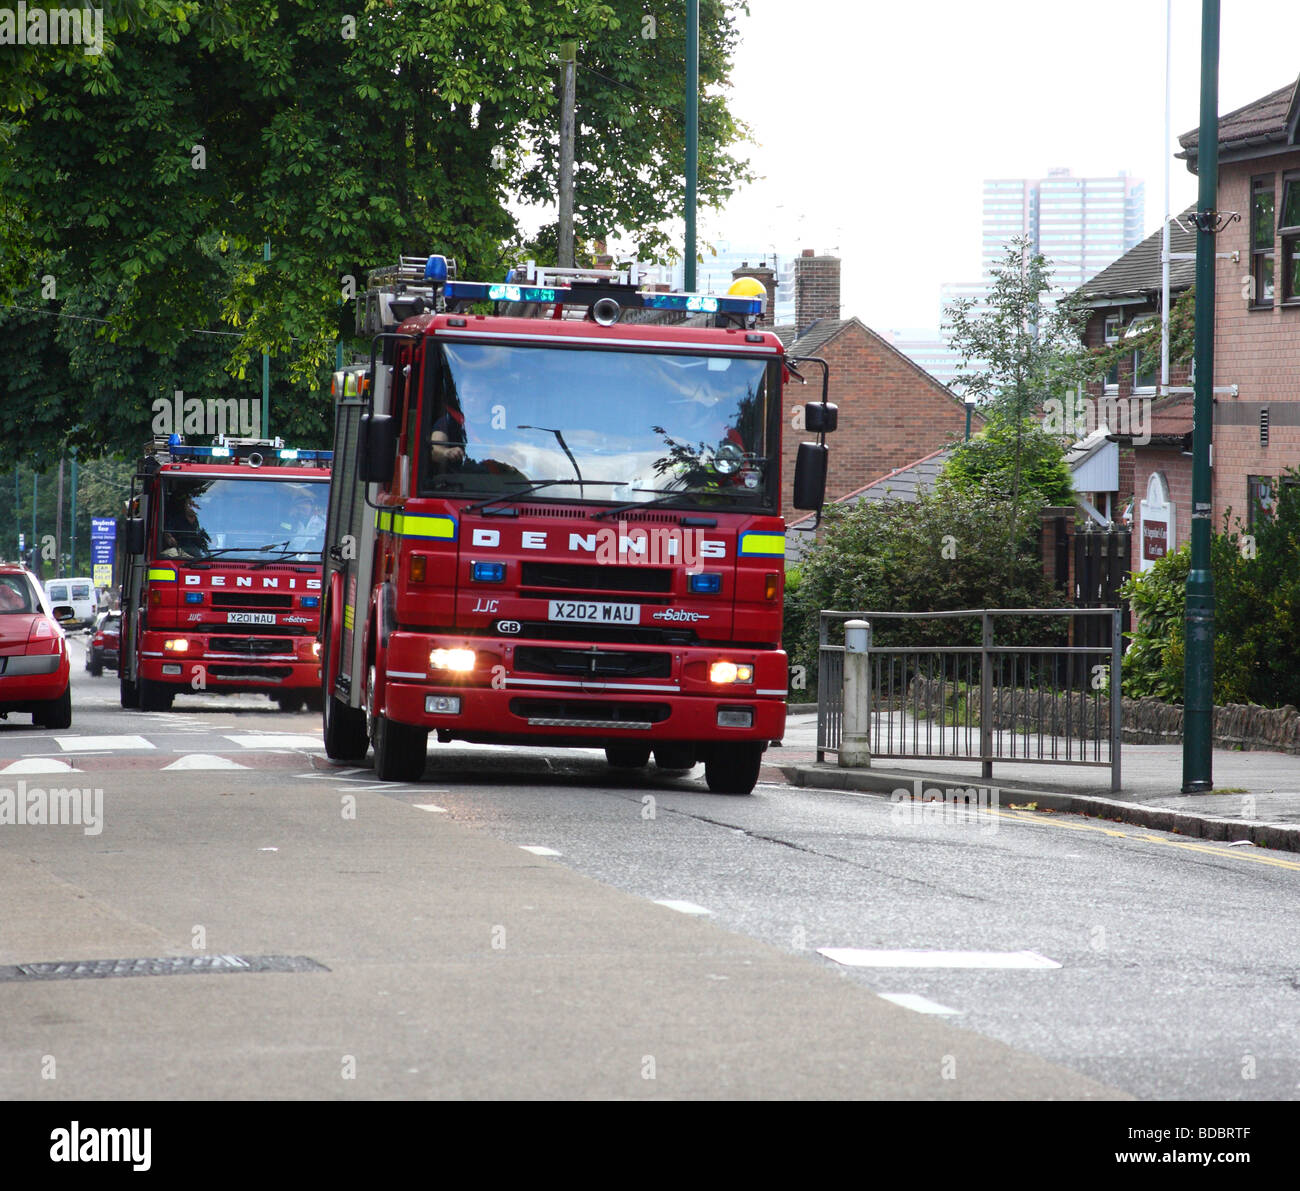 Fire engines responding to an emergency in a U.K. city. - Stock Image